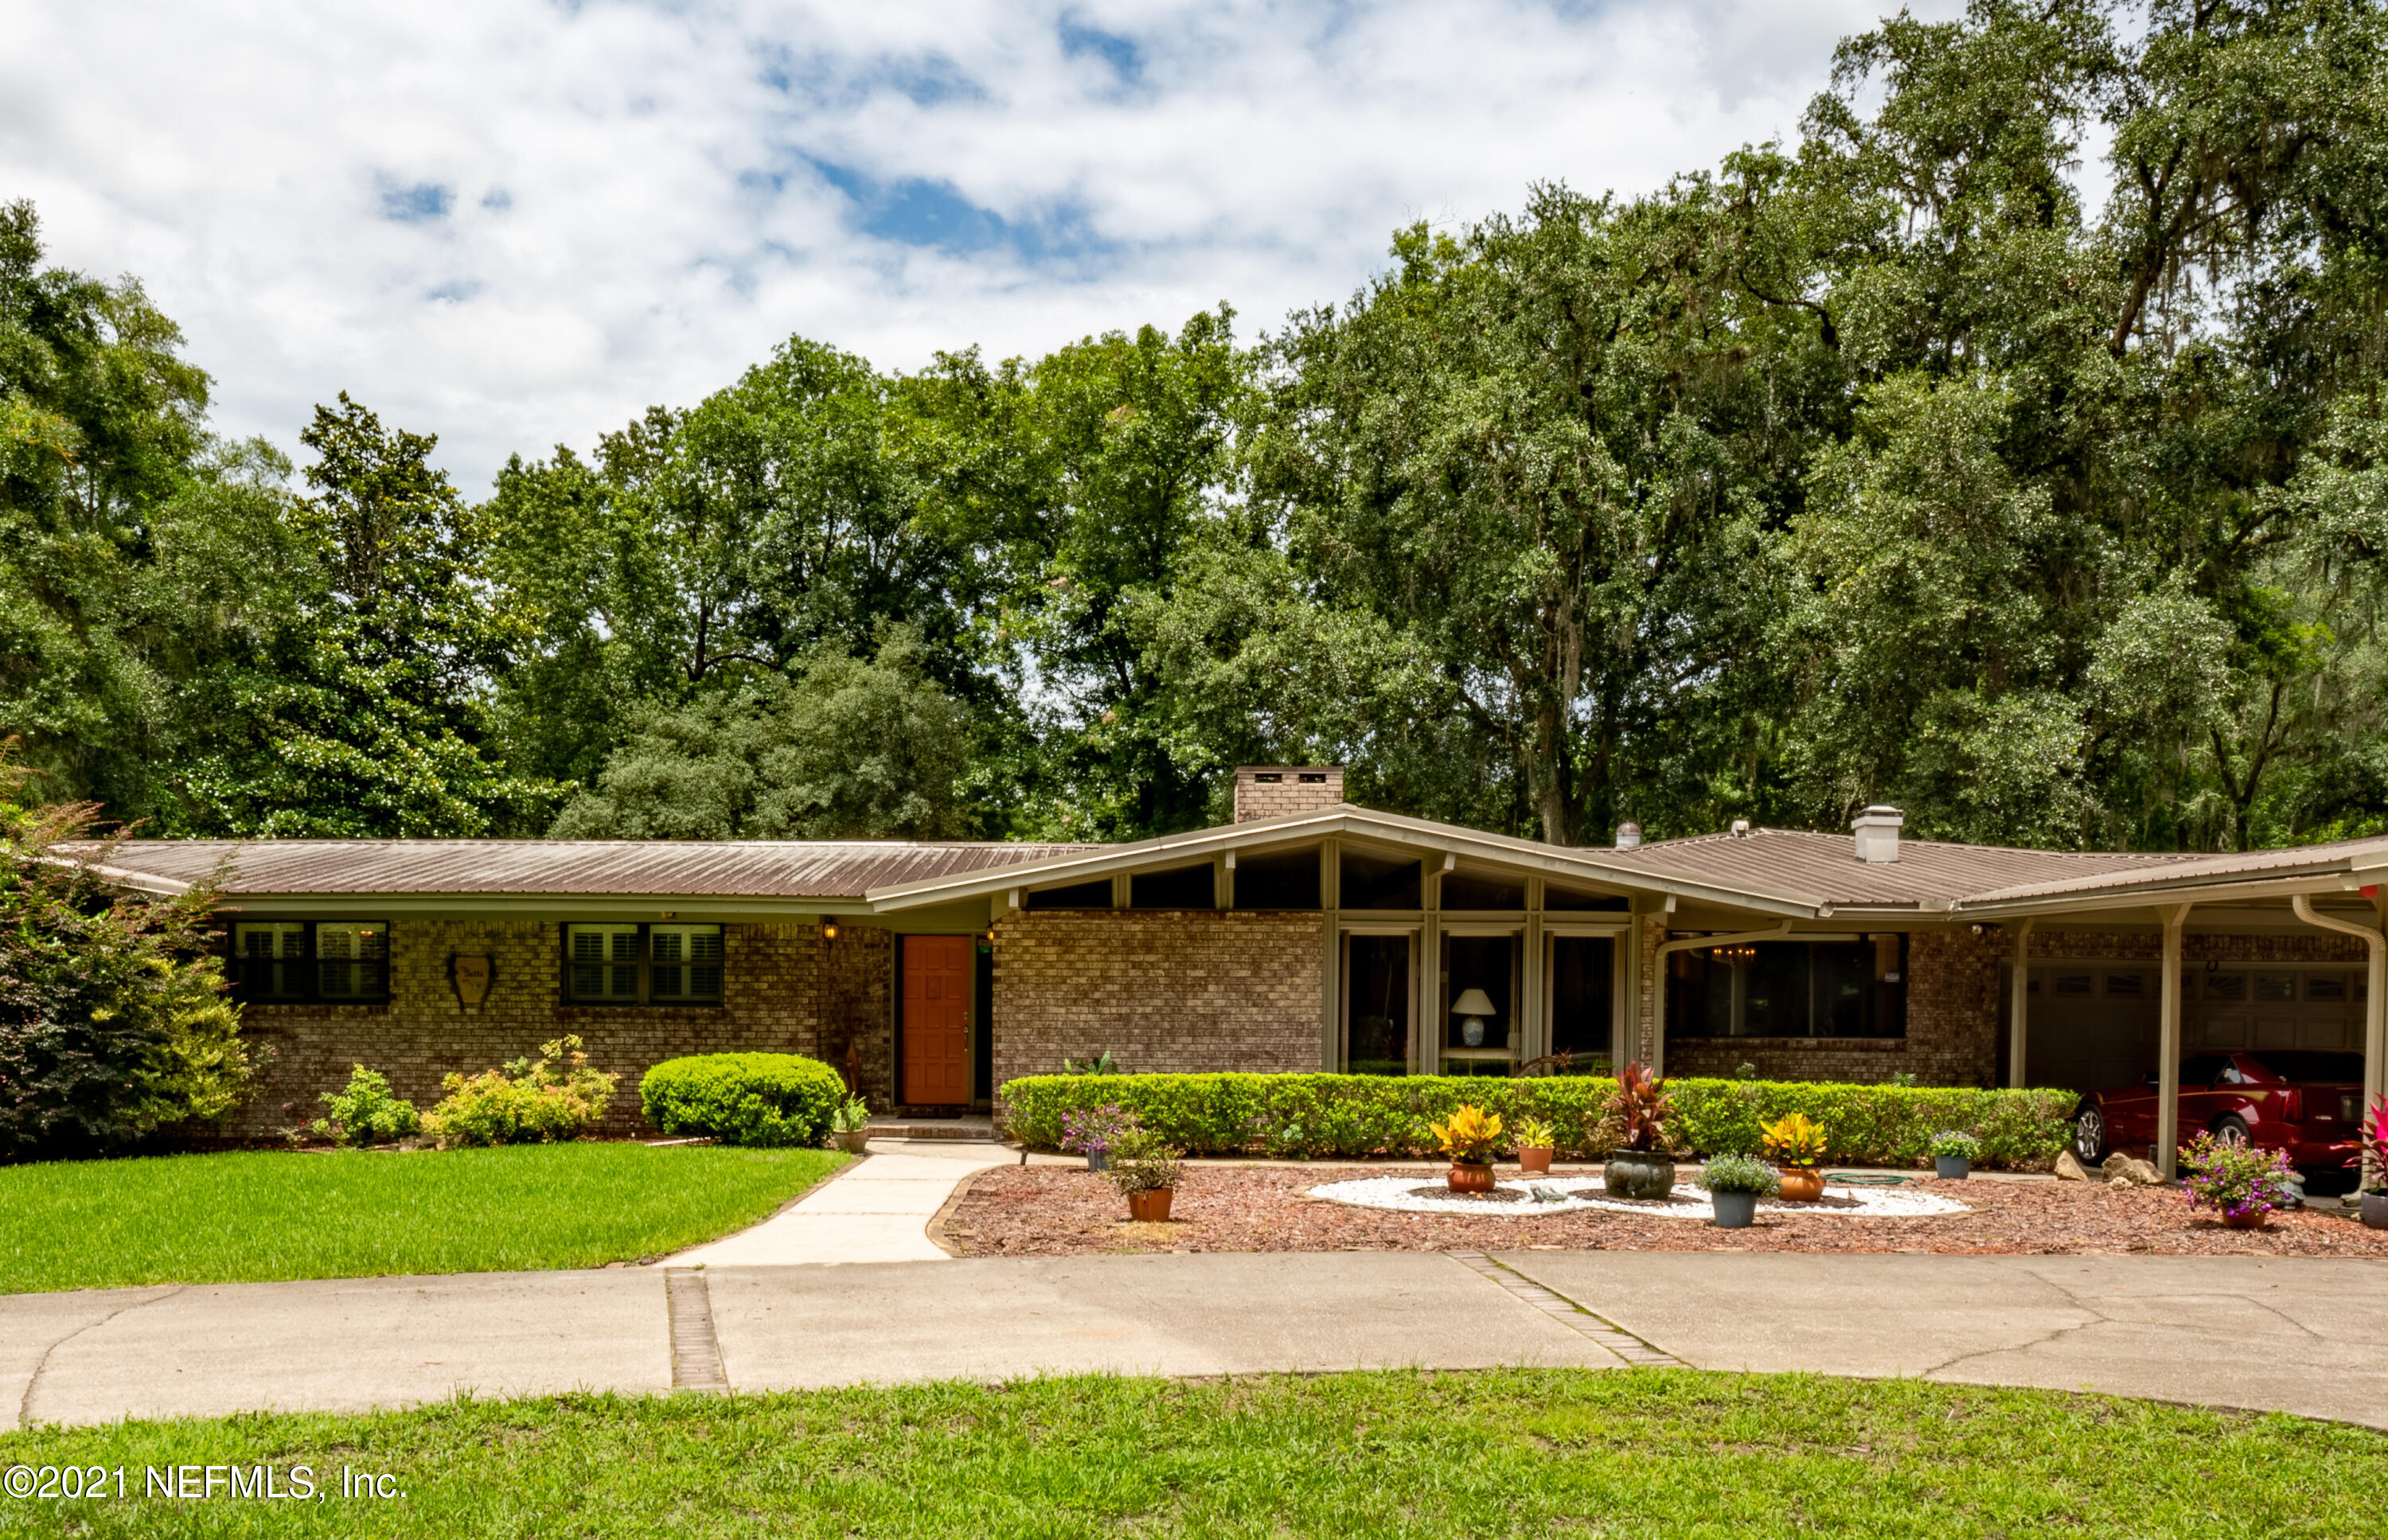 3974 SCENIC, MIDDLEBURG, FLORIDA 32068, 4 Bedrooms Bedrooms, ,3 BathroomsBathrooms,Residential,For sale,SCENIC,1119621